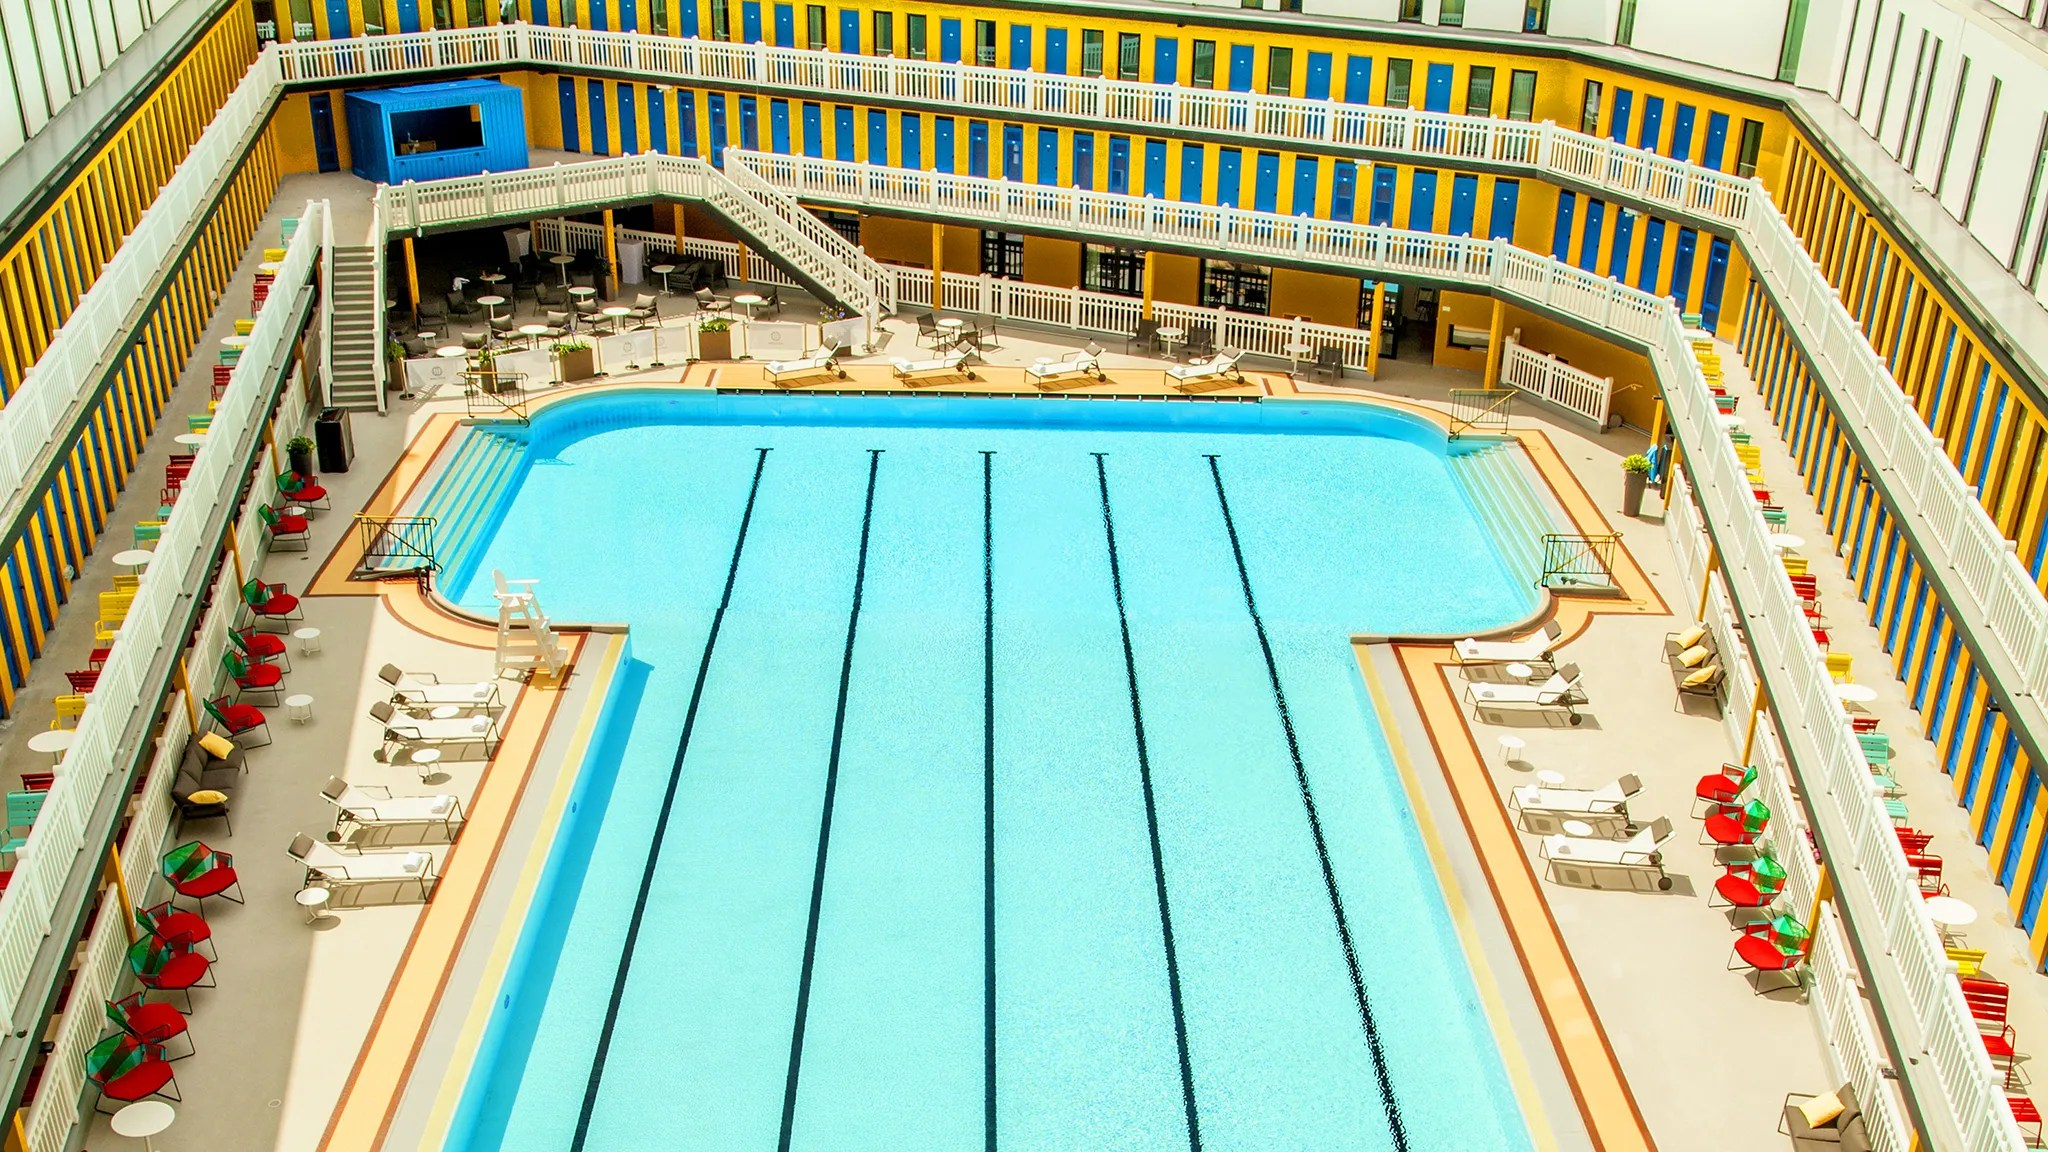 Hotel Molitor Piscine How Piscine Molitor Paris S Most Famous Pool Became A Glamorous